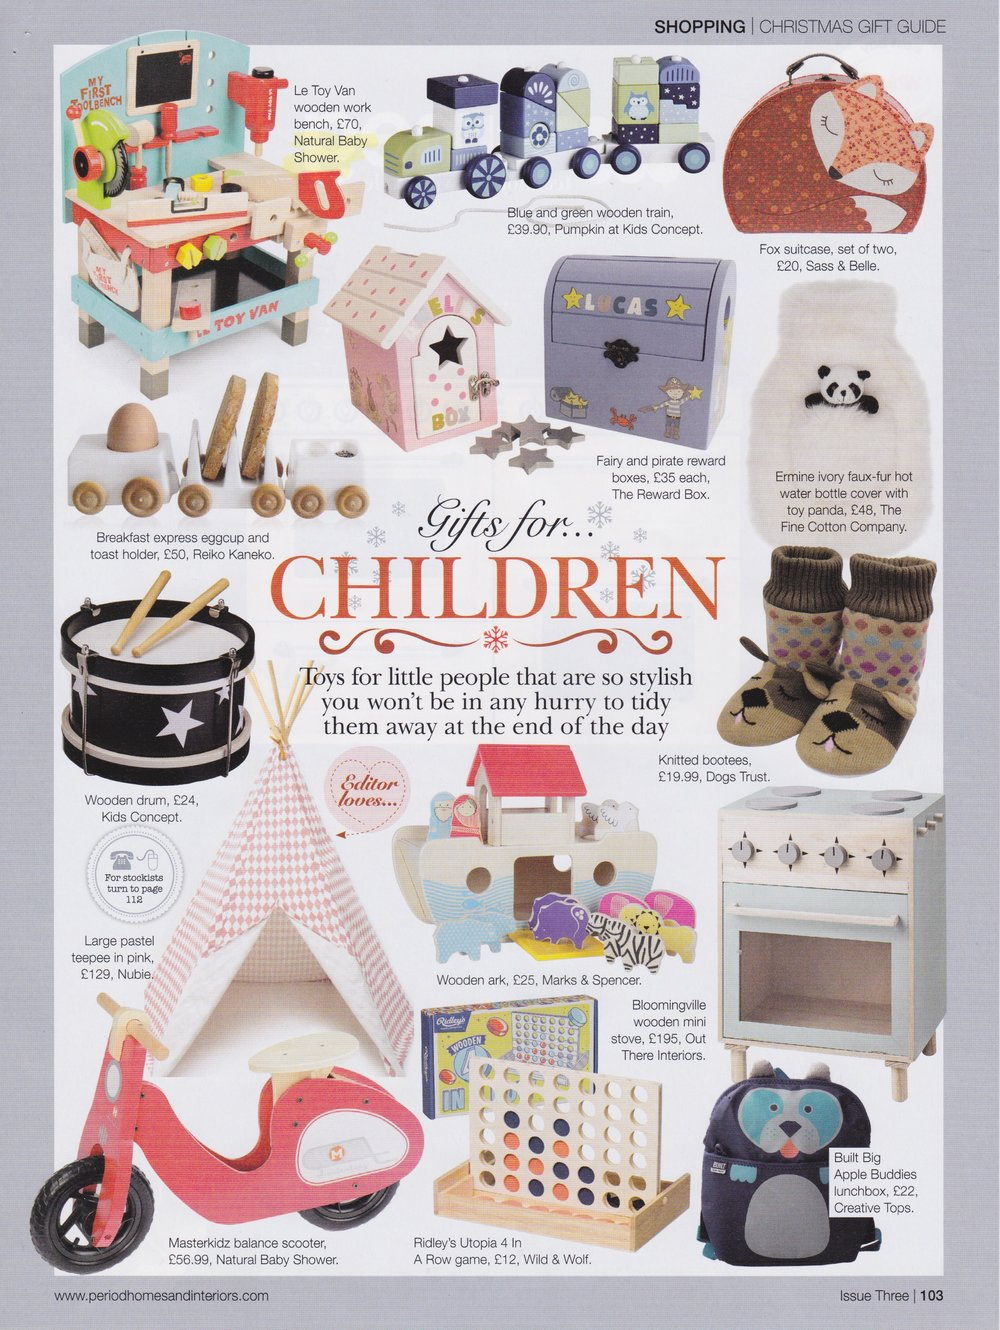 The Christmas edition of Period Homes and Interiors has selected The Reward Box as one of their top Christmas Gift Ideas for kids